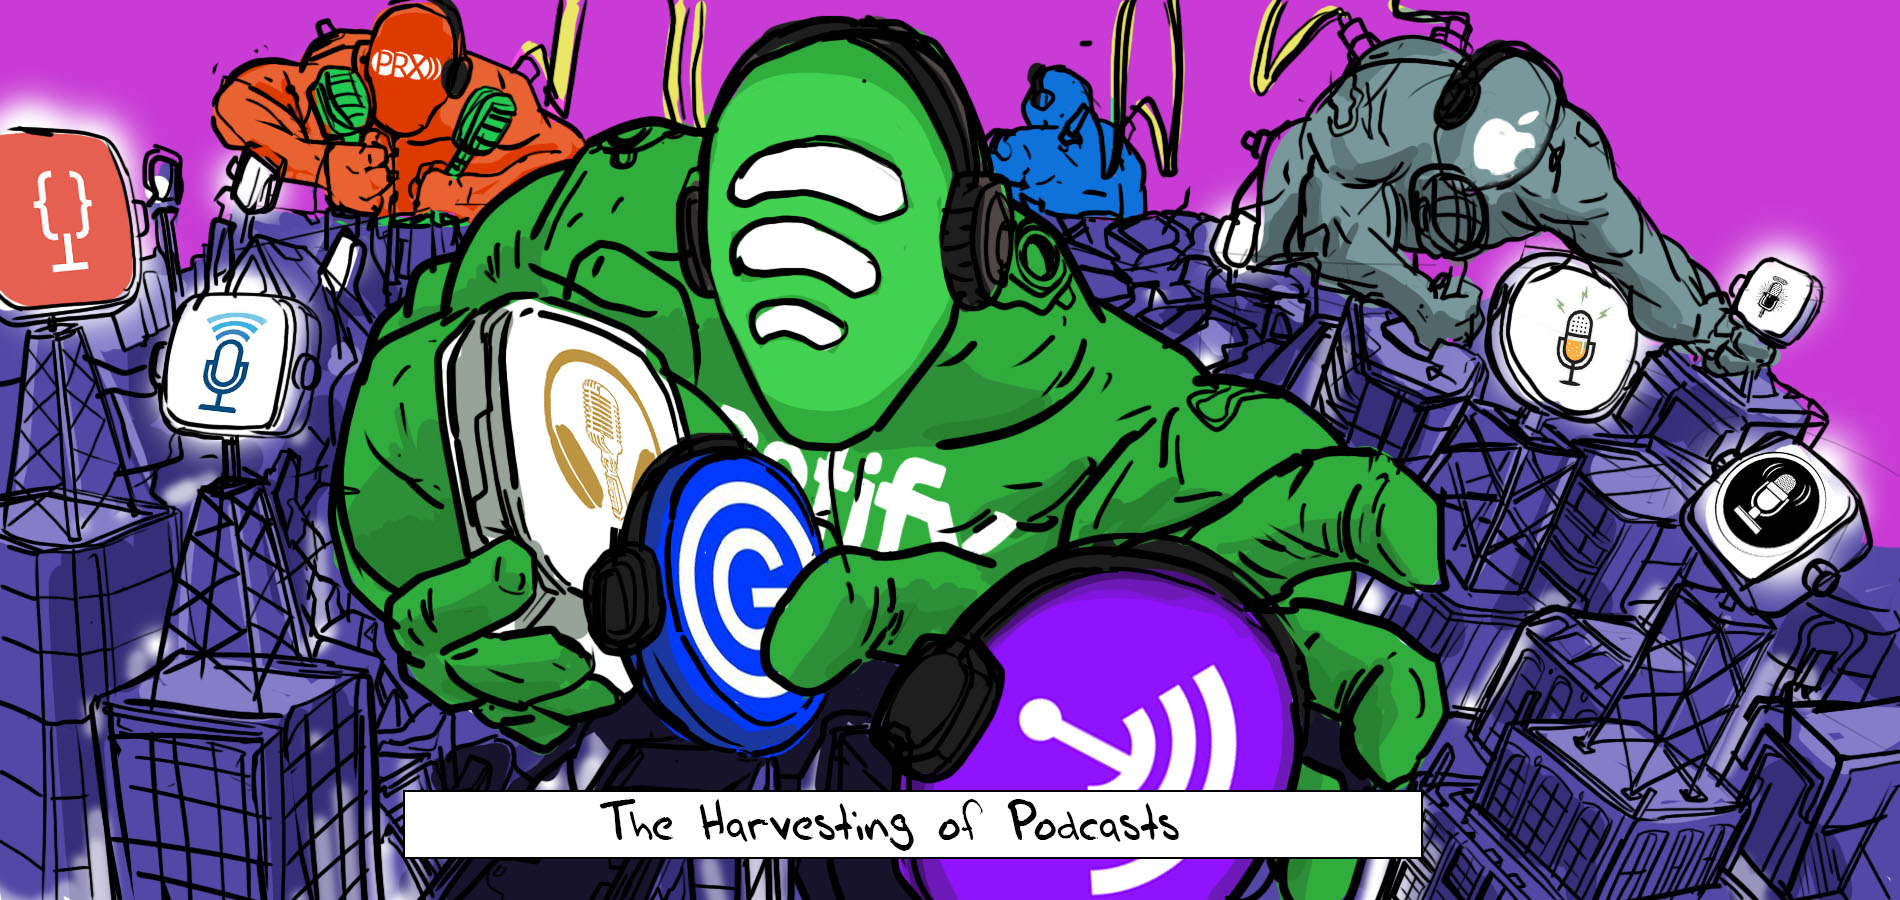 industry giants harvesting podcasts and in a buying spree